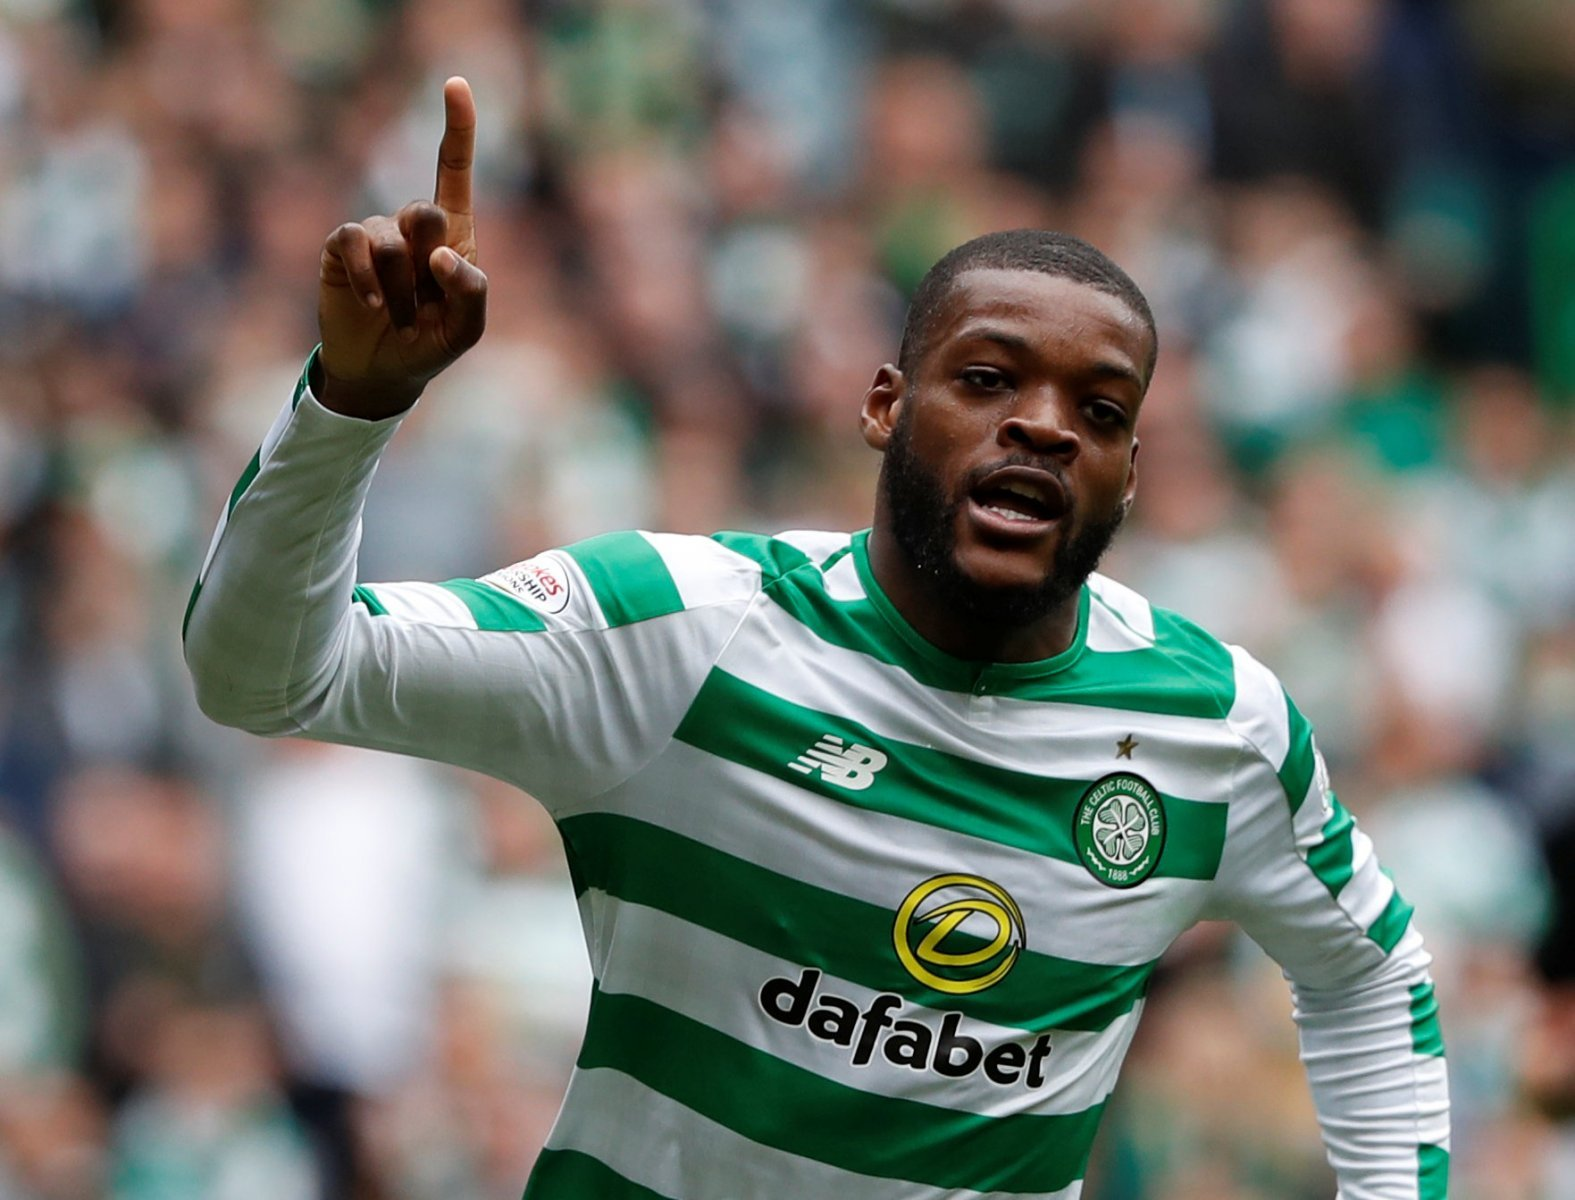 Celtic fans on Twitter desperate to accept huge bid for Ntcham